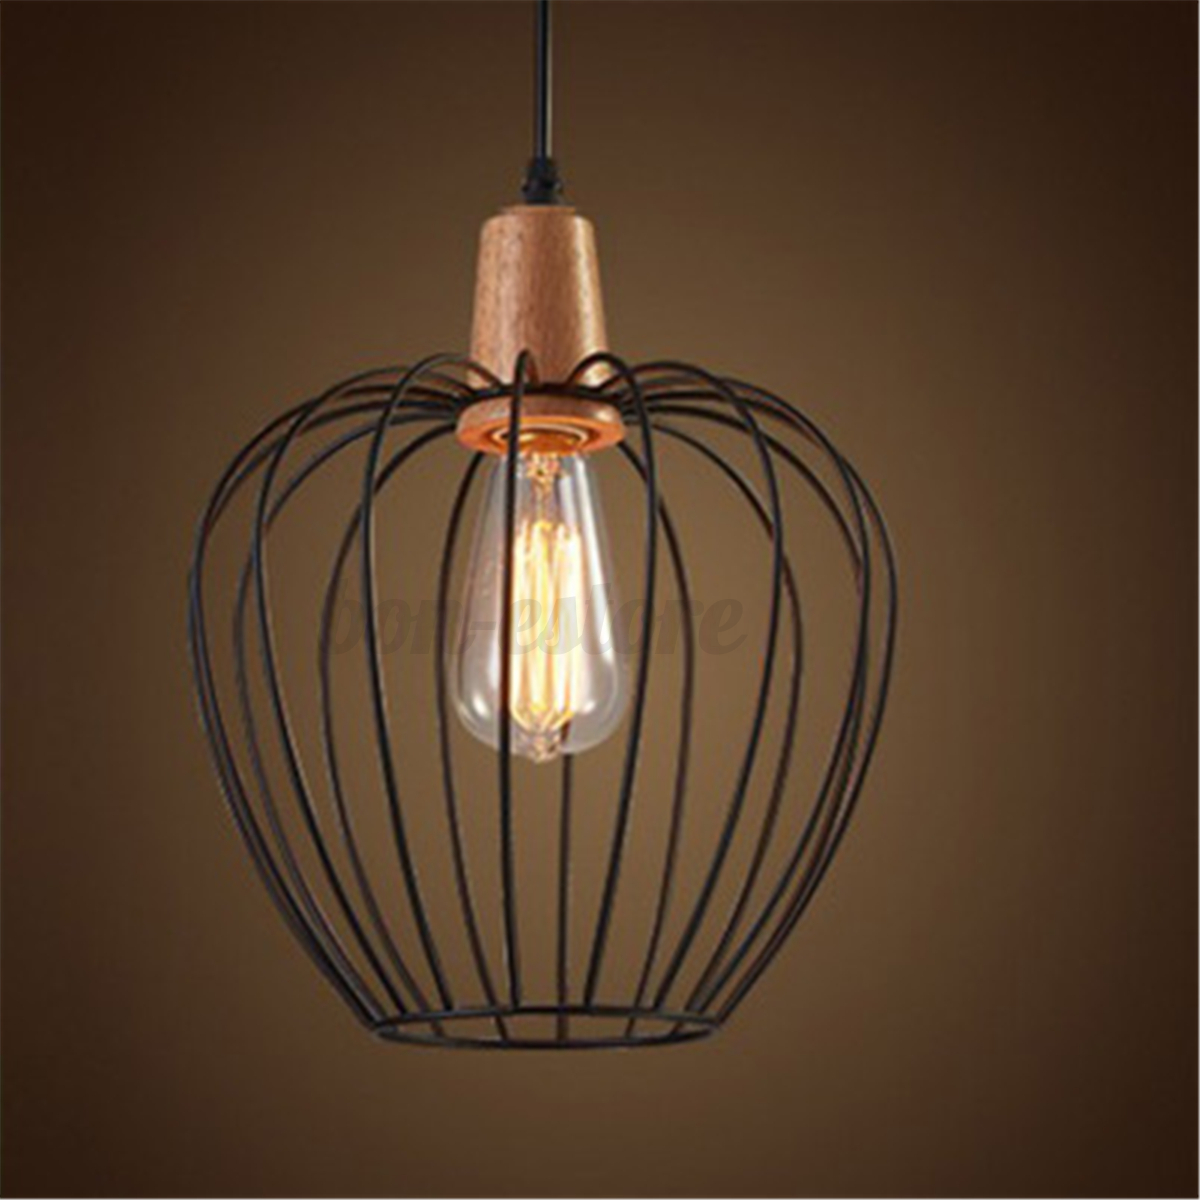 Industrial Vintage Lighting Iron Vintage Ceiling Light Fixtures Industrial Chandelier